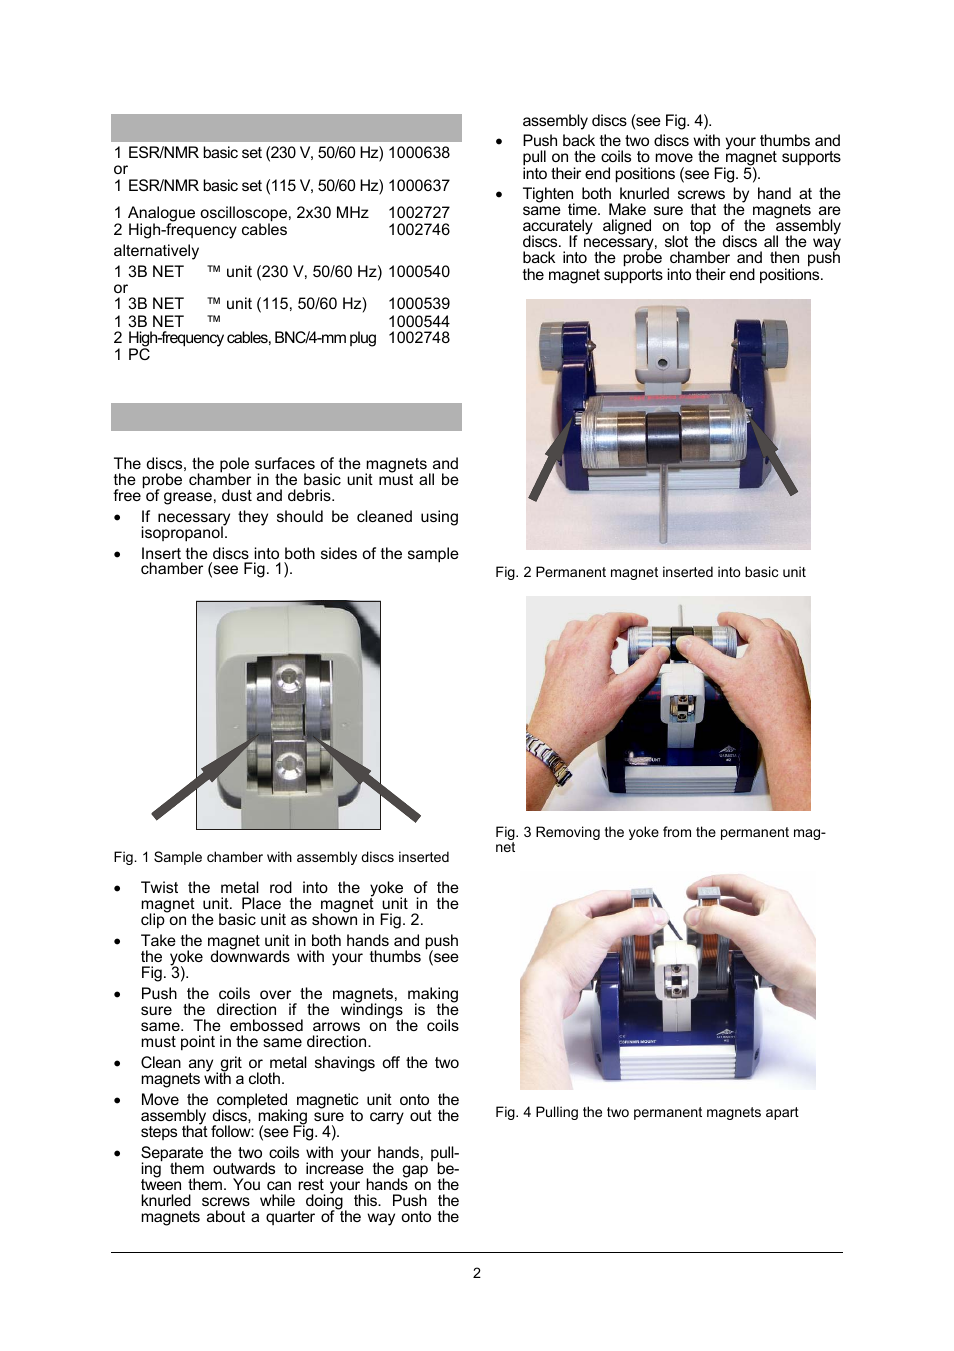 3b Scientific Teltron Nmr Supplementary Set User Manual Page 2 6